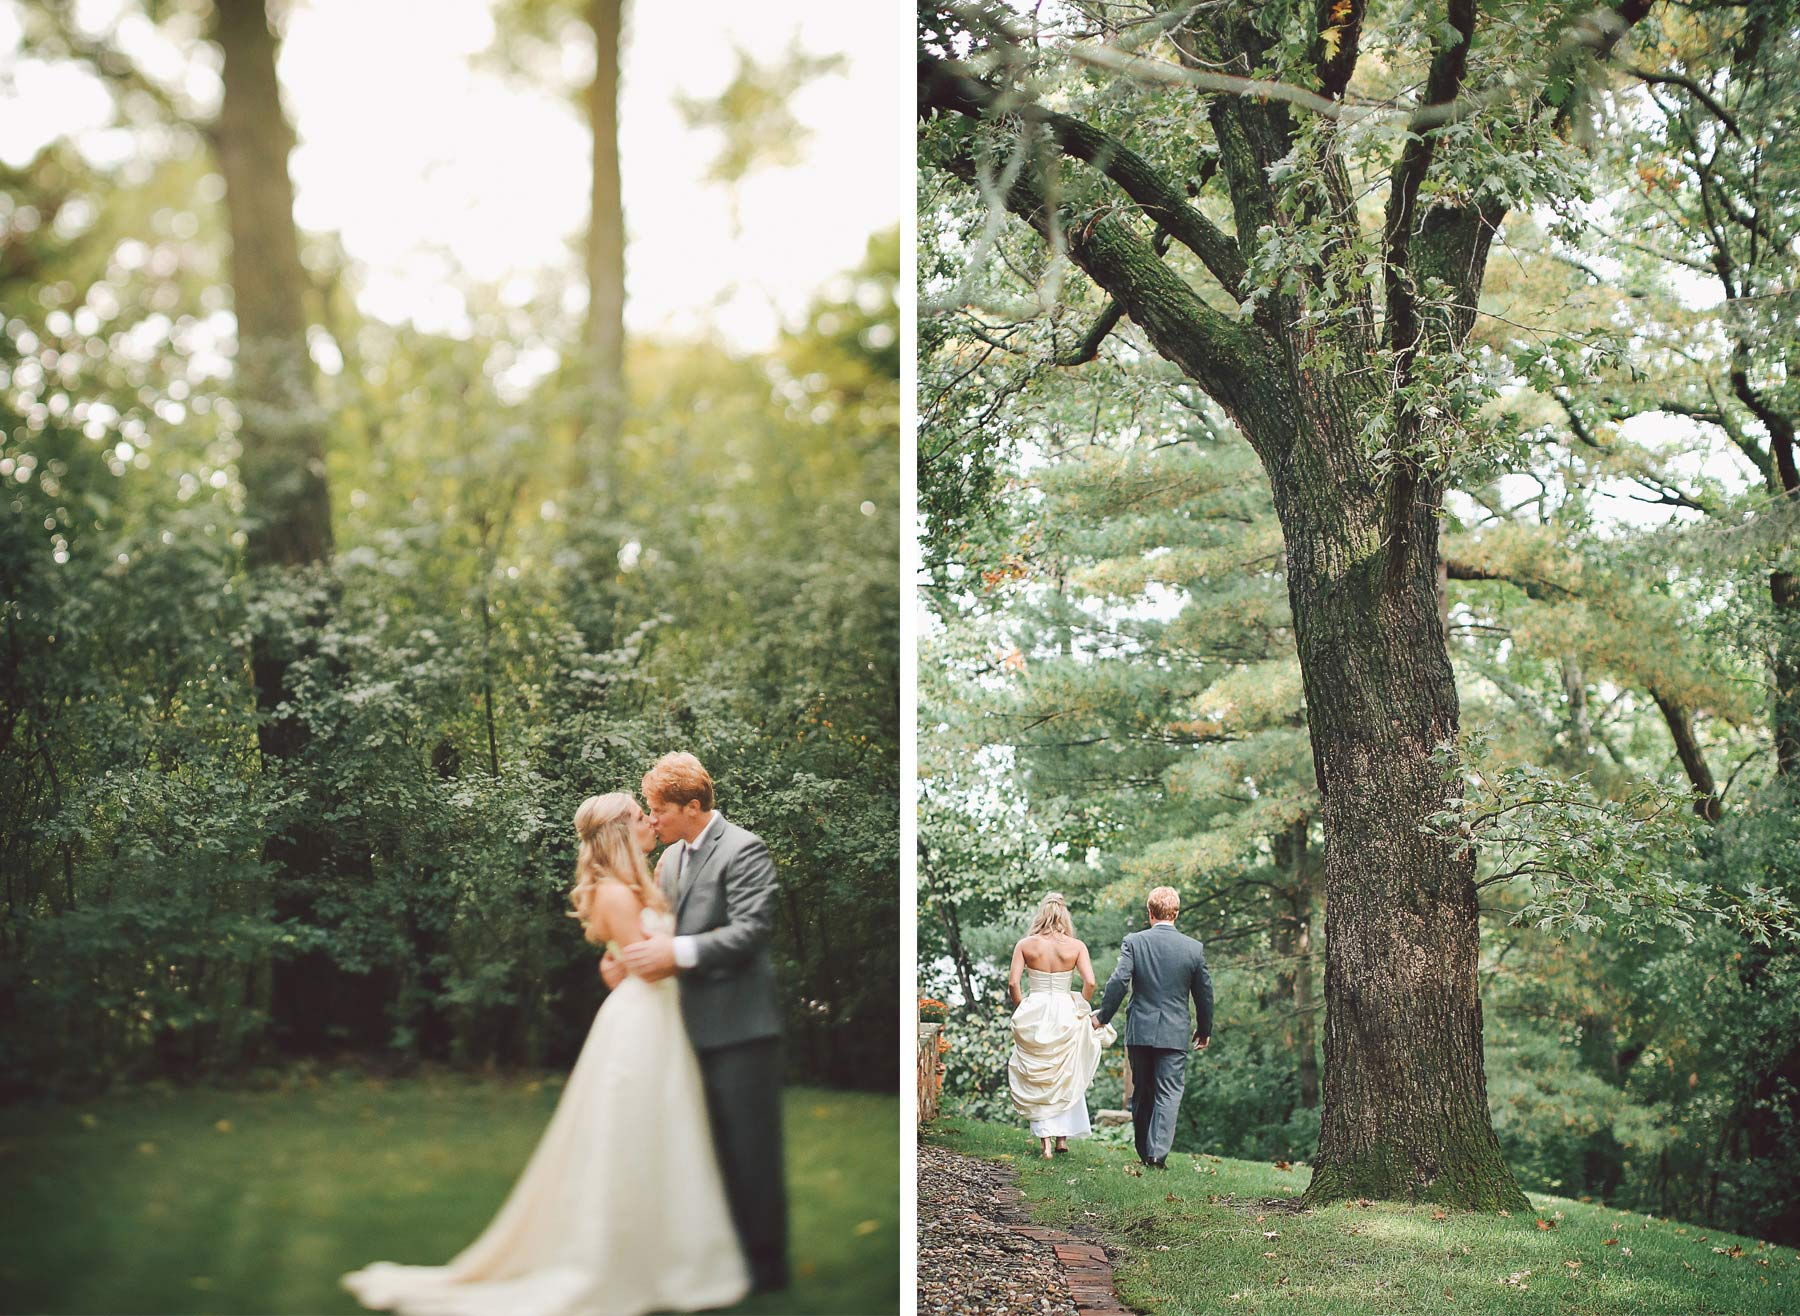 07-Minneapolis-Minnesota-Wedding-Photographer-by-Andrew-Vick-Photography-Fall-Autumn-Parents-House-First-Meeting-Look-Backyard-Bride-Groom-Kiss-Vintage-Krissy-and-James.jpg